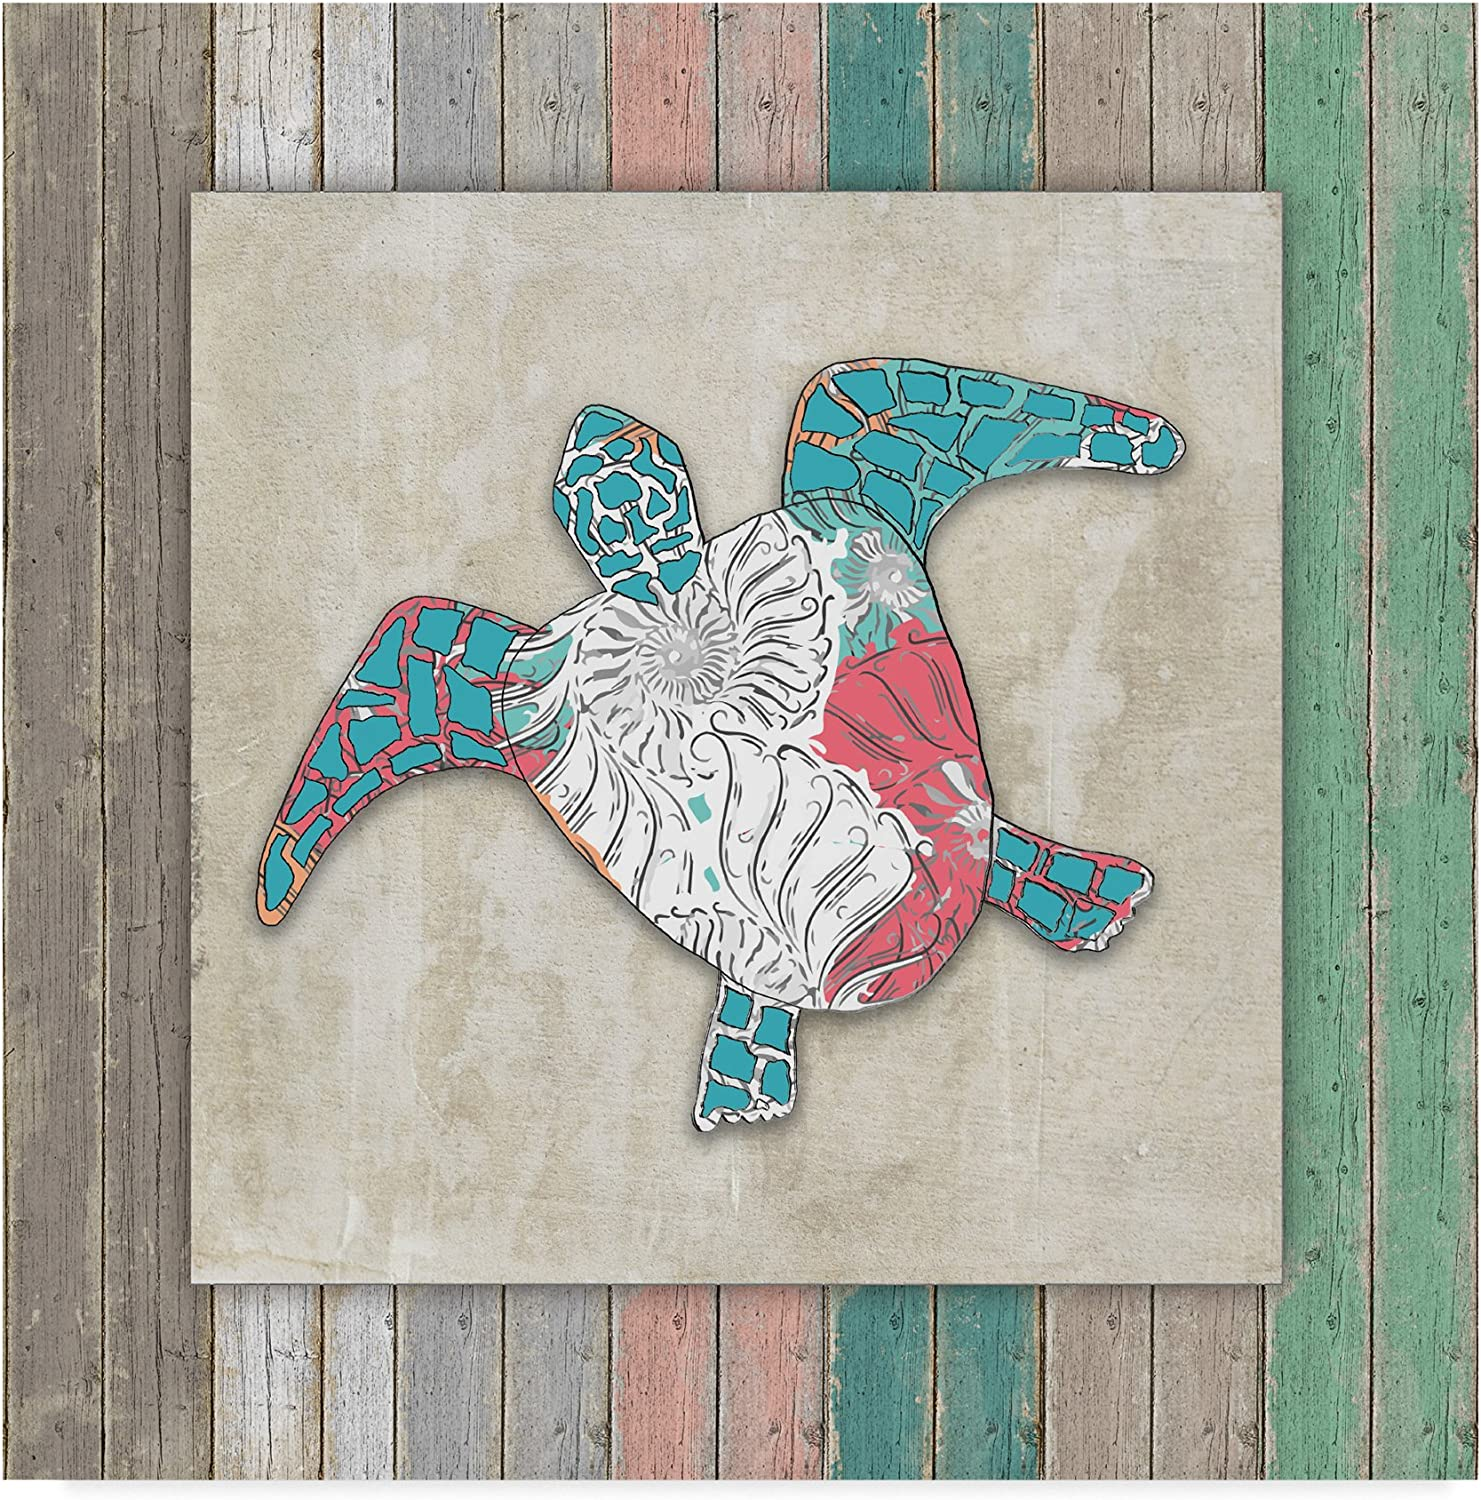 Wood Frame Turtle by Lightboxjournal, 14x14-Inch